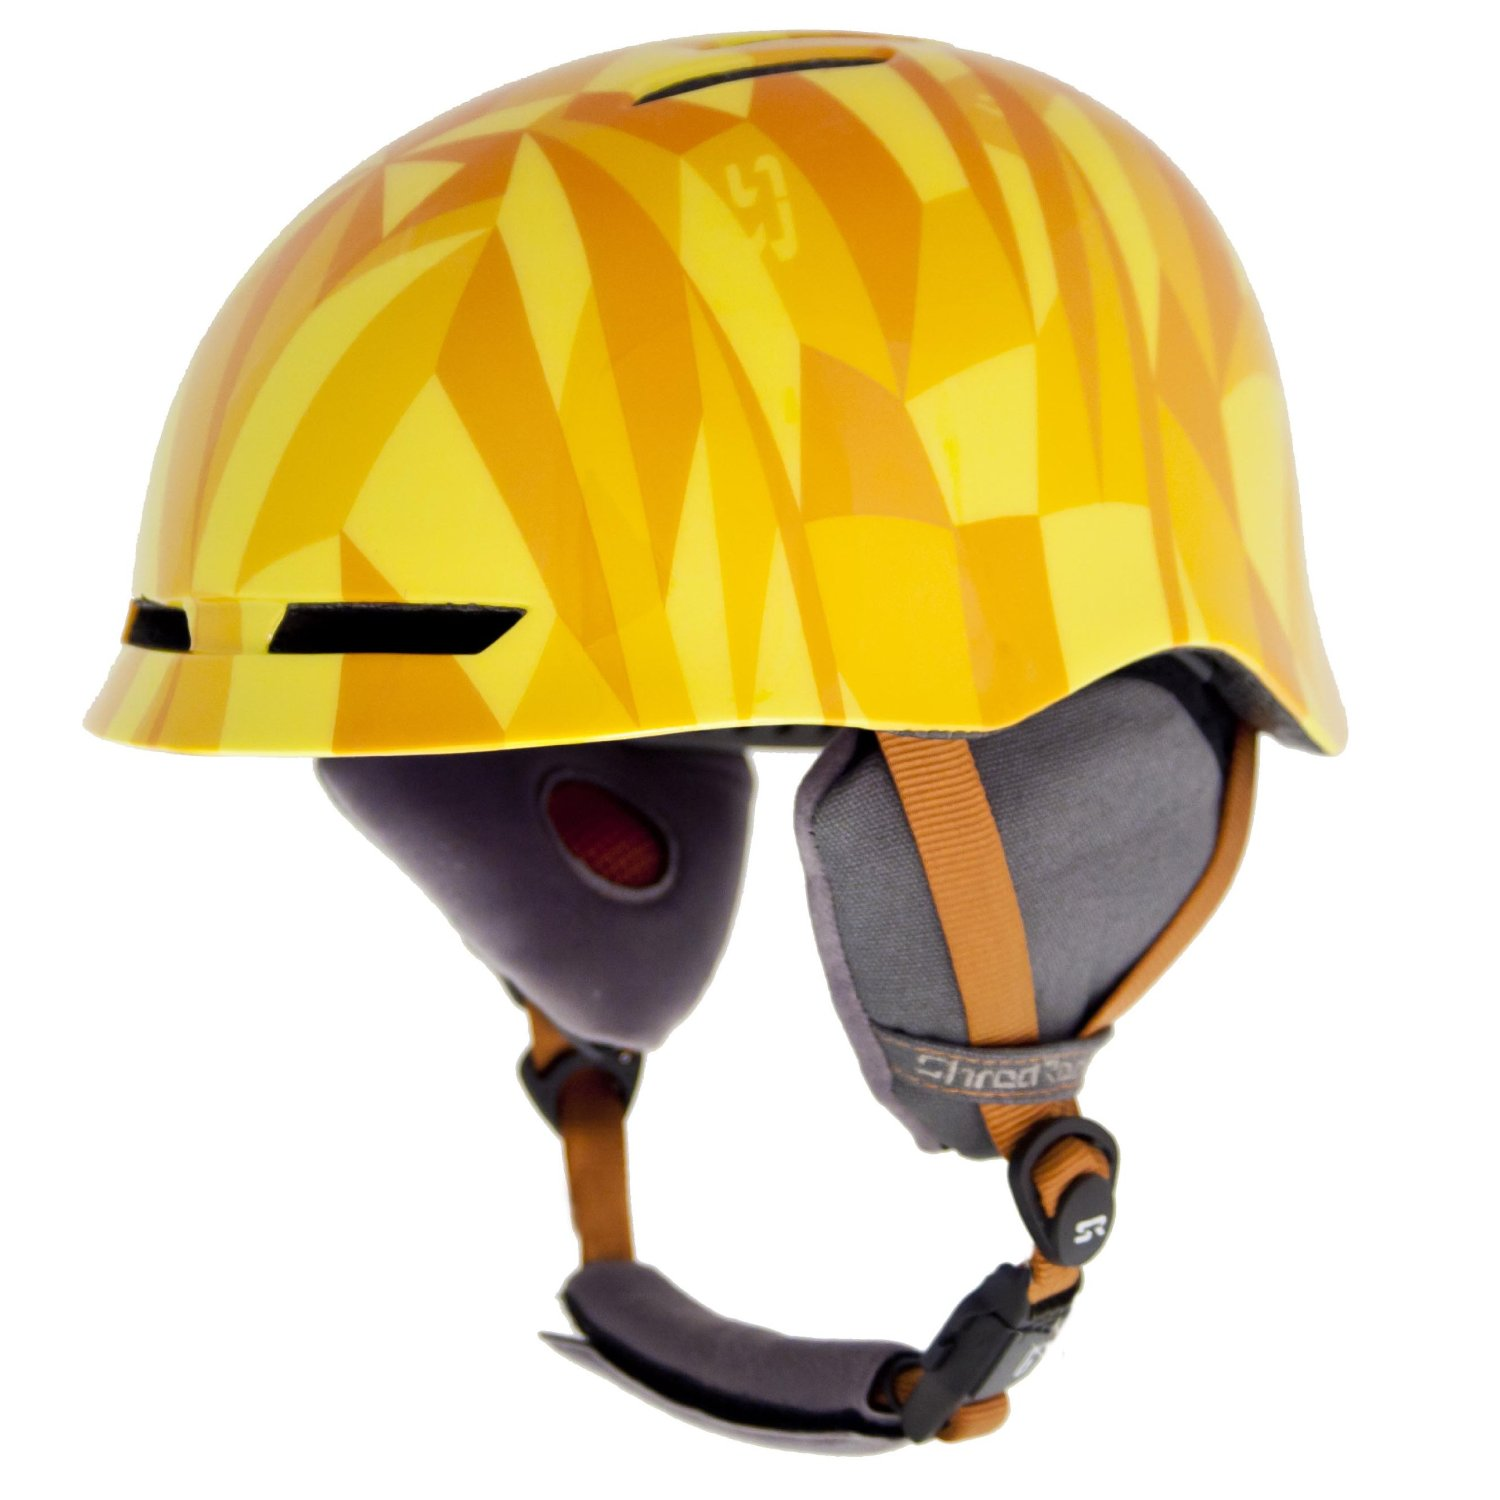 Small Shred Ready Bicycle Helmets